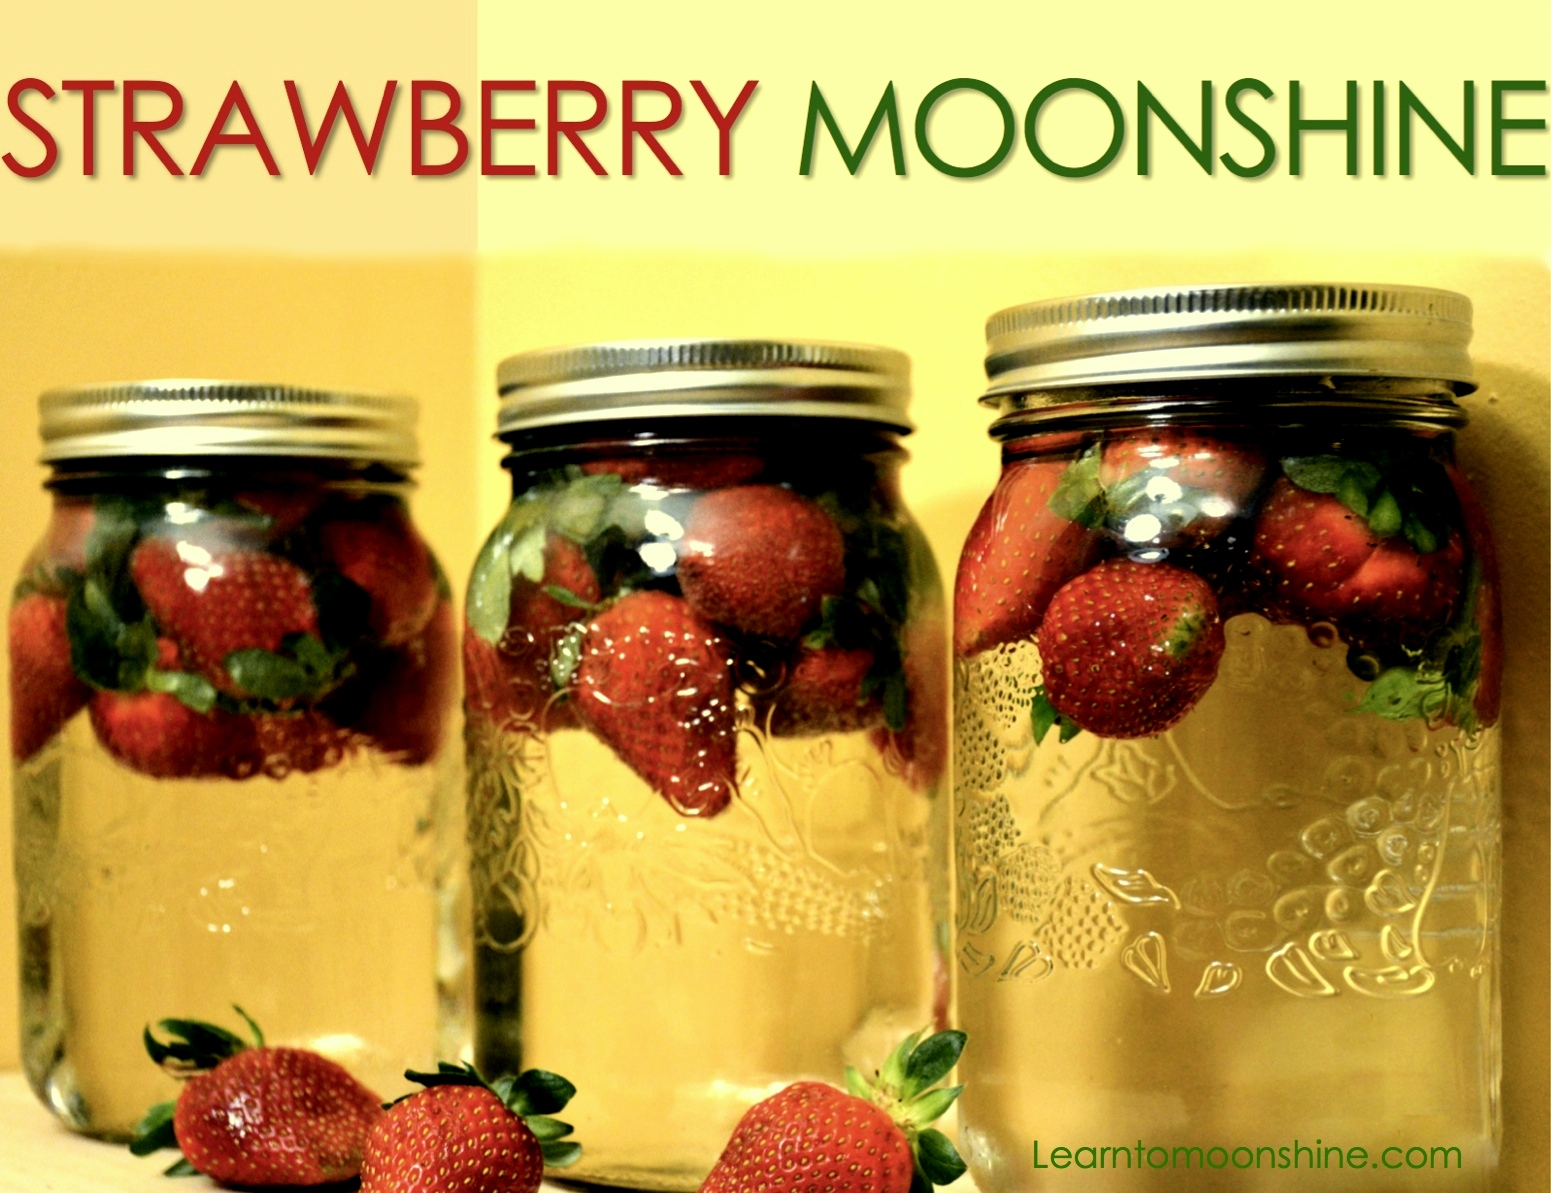 strawberry moonshine, infused, homemade moonshine